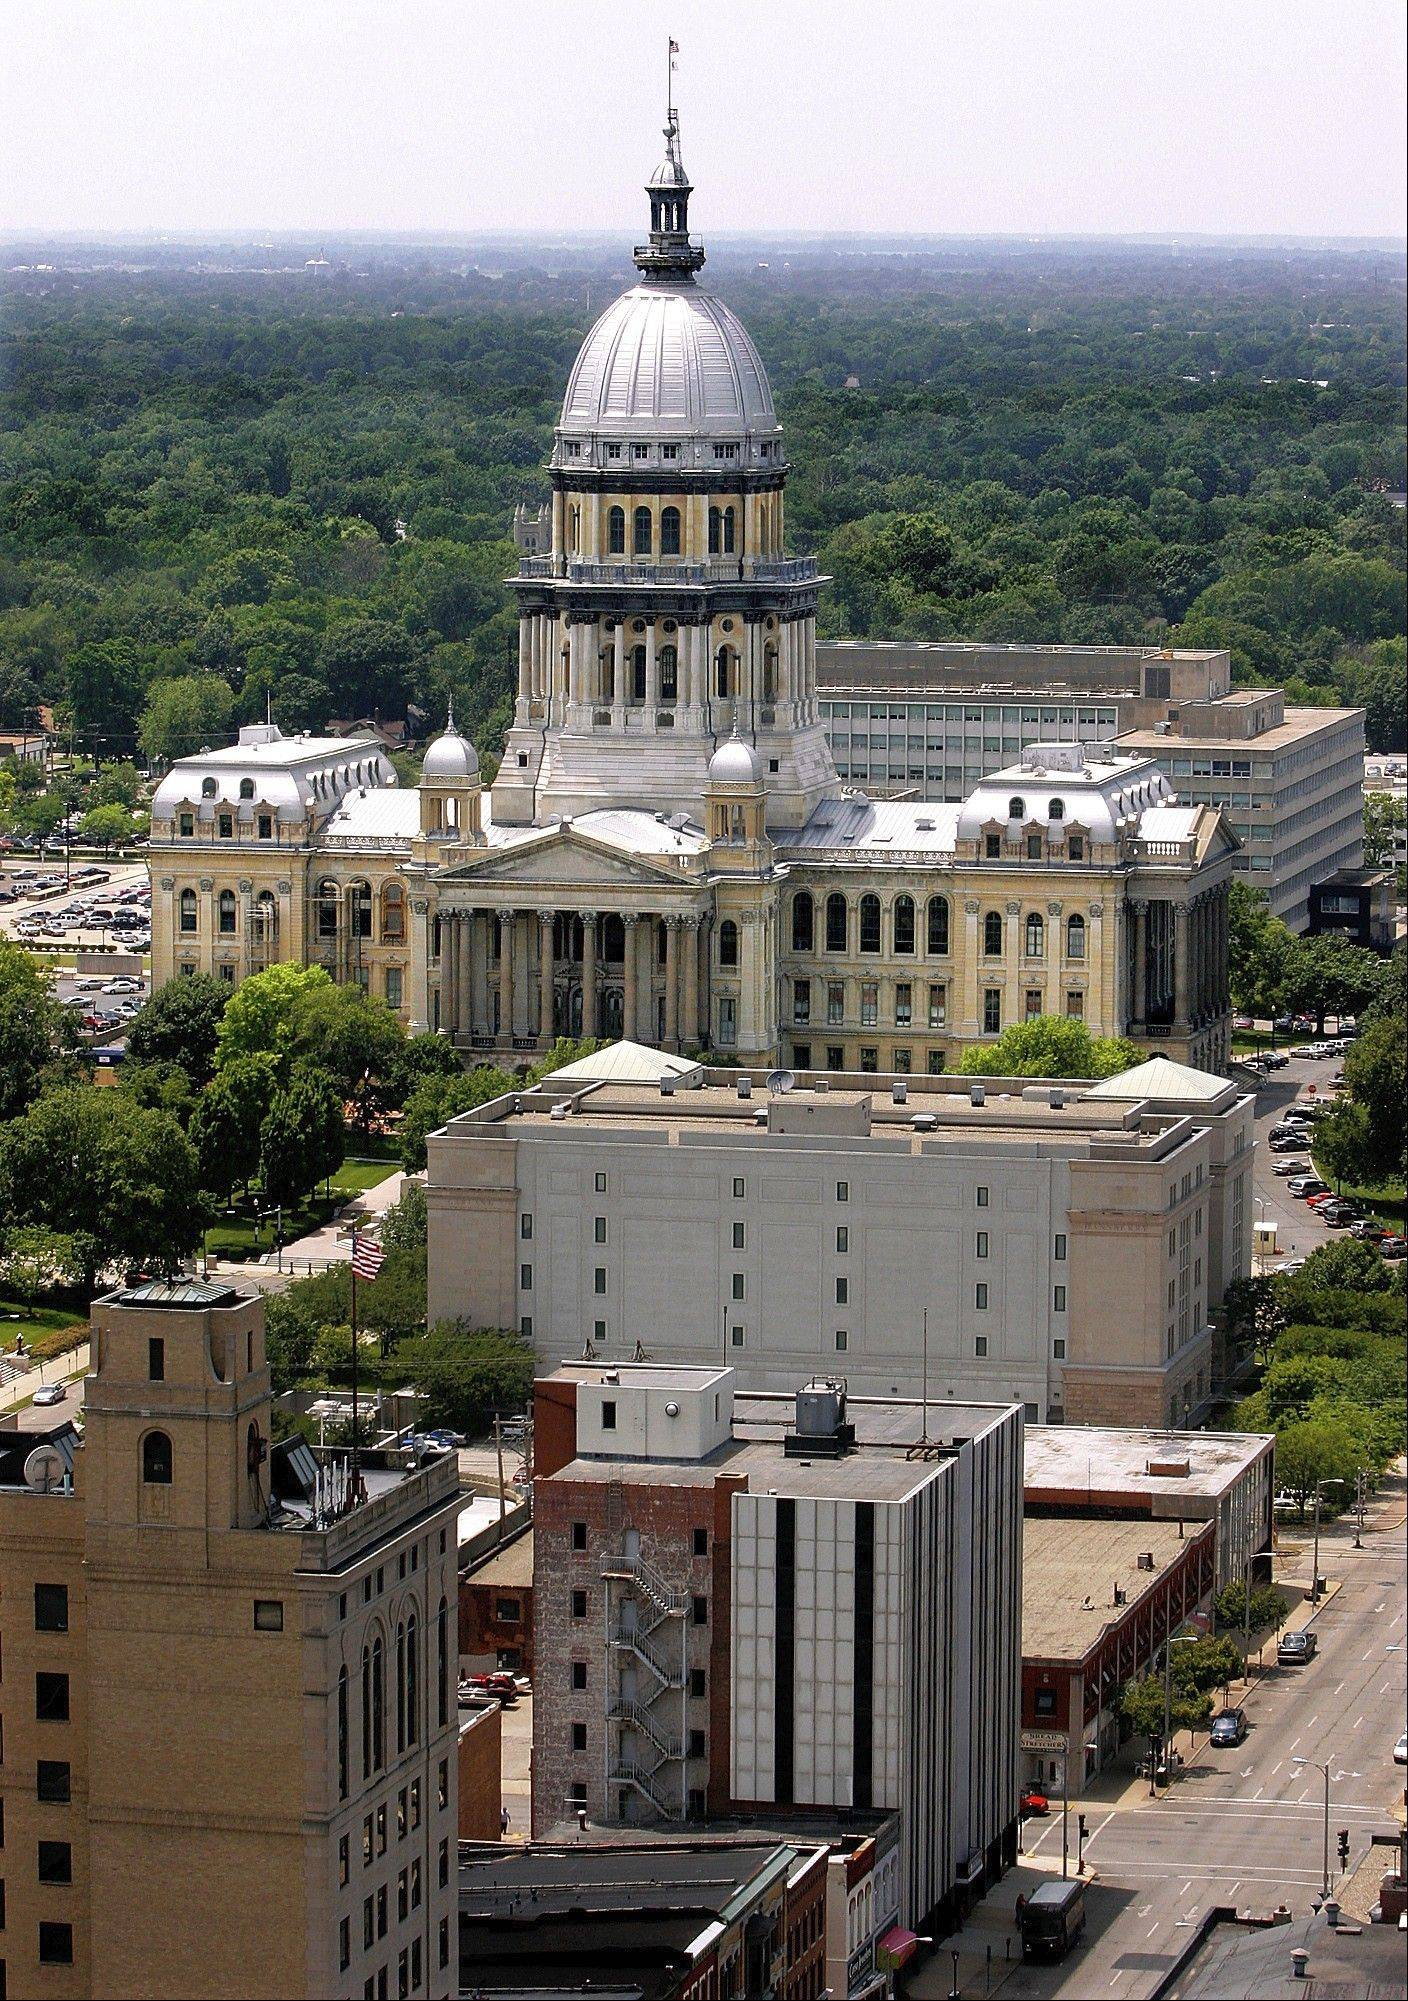 State lawmakers will meet Tuesday in Springfield to likely consider a new package of pension benefit cuts.